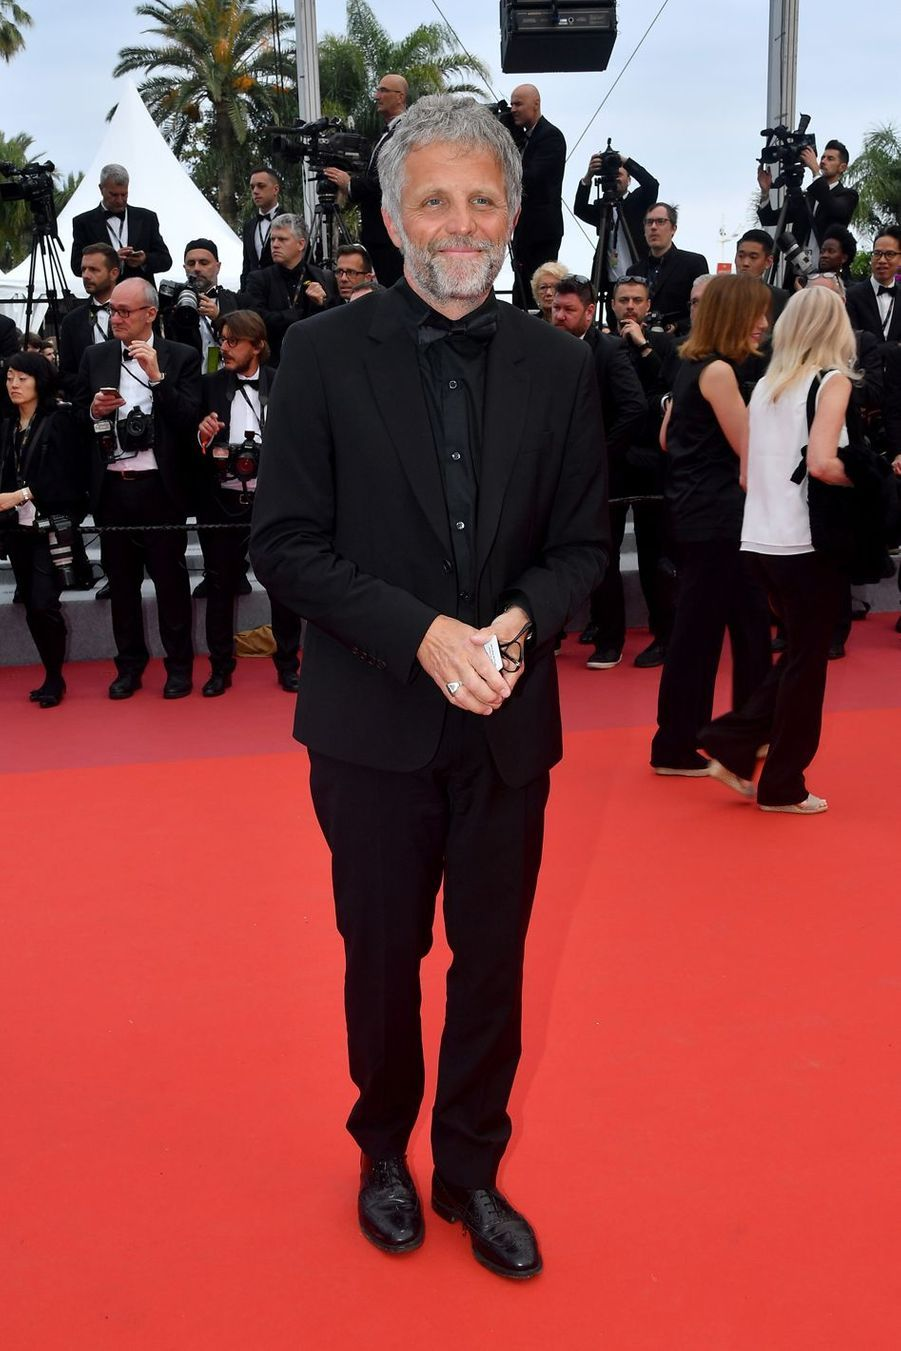 Stephane Guillon à Cannes, le 24 mai 2019